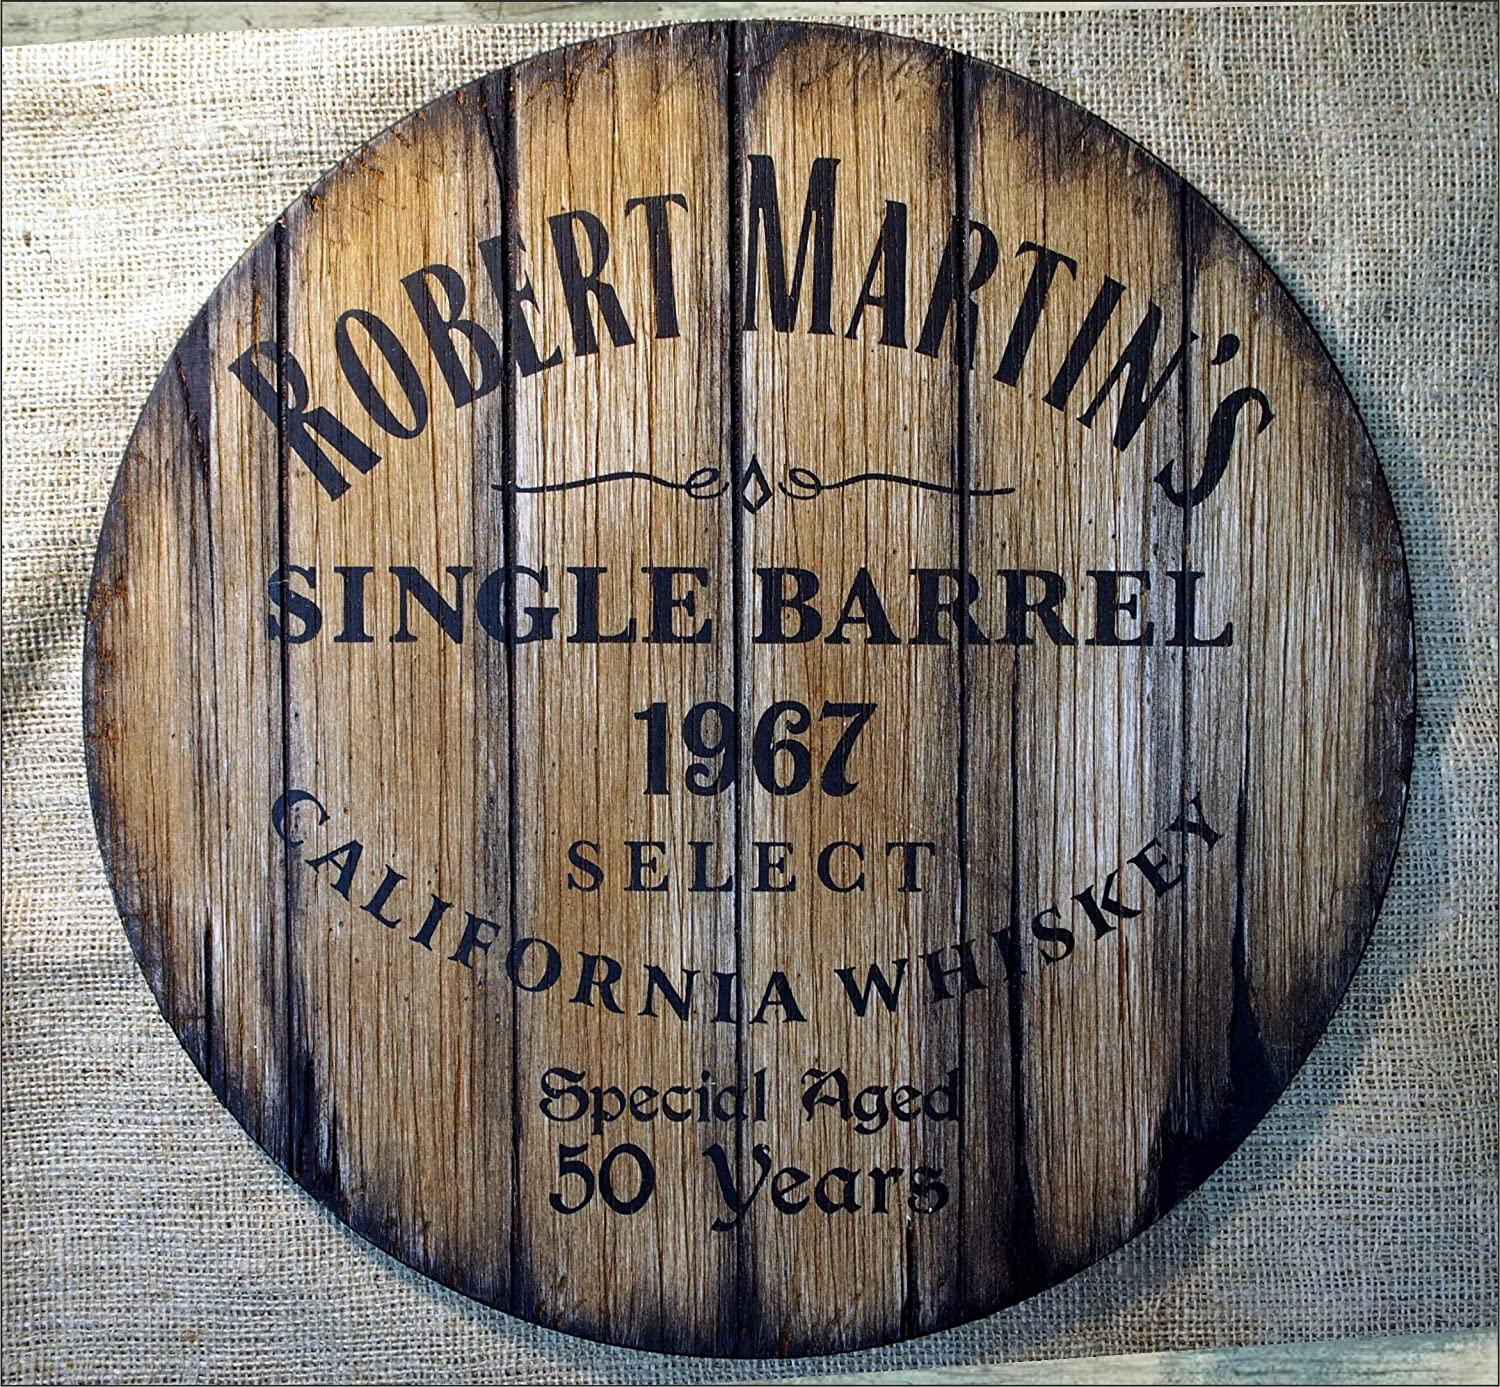 Custom rustic decor sign inspired by old whiskey barrel tops | Personalized Gift | Gifts for men, Husband, Dad, Groom, Best Man | Living room, Home Bar, Man Cave decoration